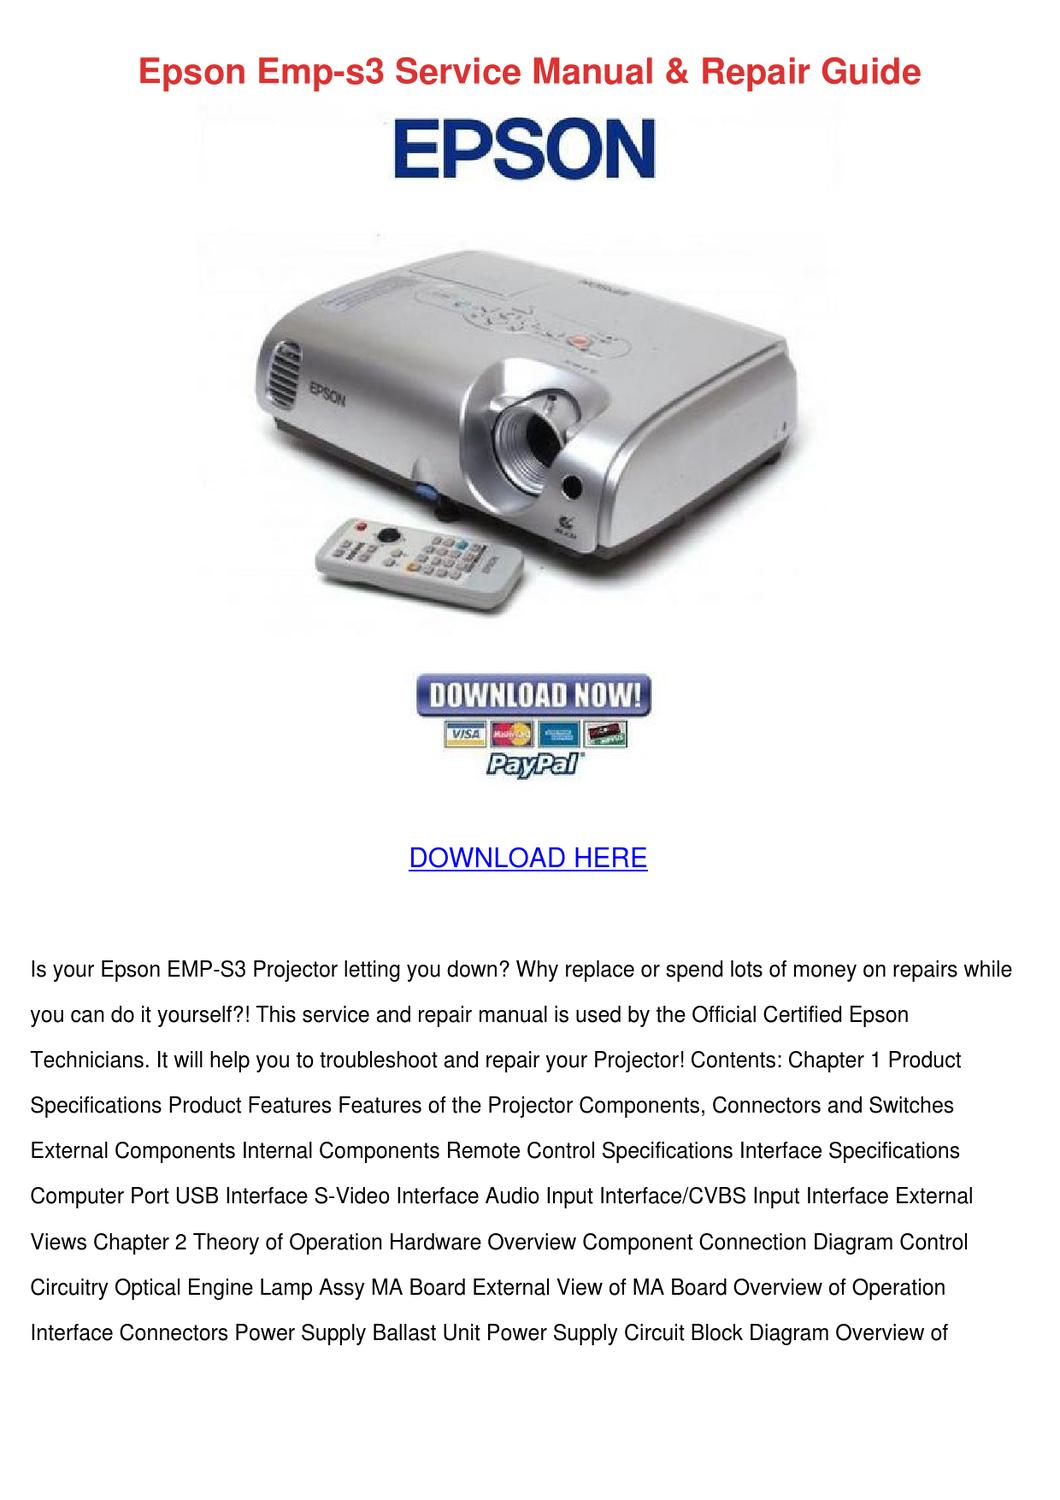 epson emp s3 service manual repair guide by lenorelanham issuu rh issuu com Epson 3LCD Projector Troubleshooting Epson EX30 Projector Manuals